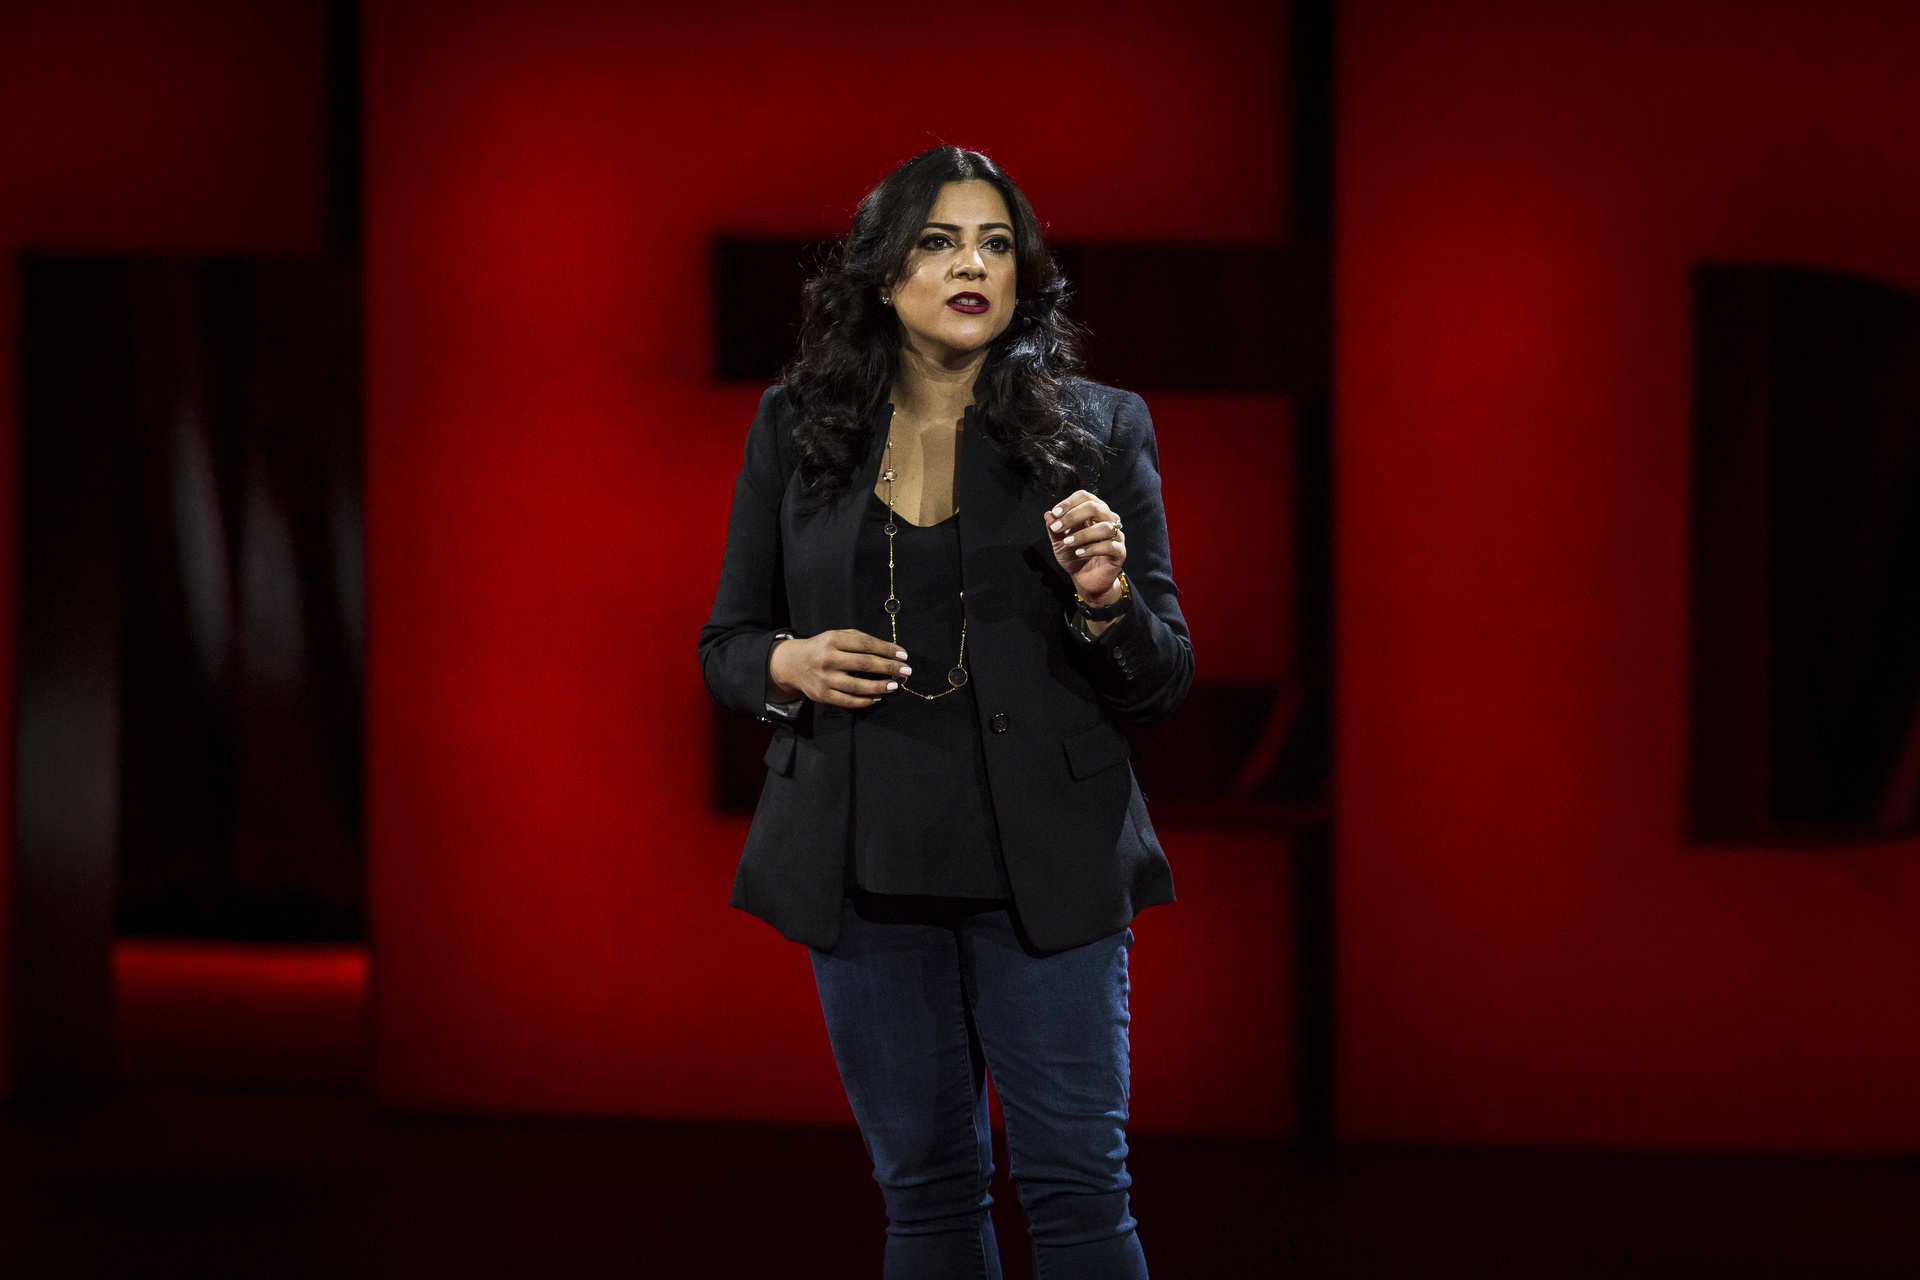 Reshma Saujani speaks at TED2016 - Dream, February 15-19, 2016, Vancouver Convention Center, Vancouver, Canada. Photo: Marla Aufmuth / TED